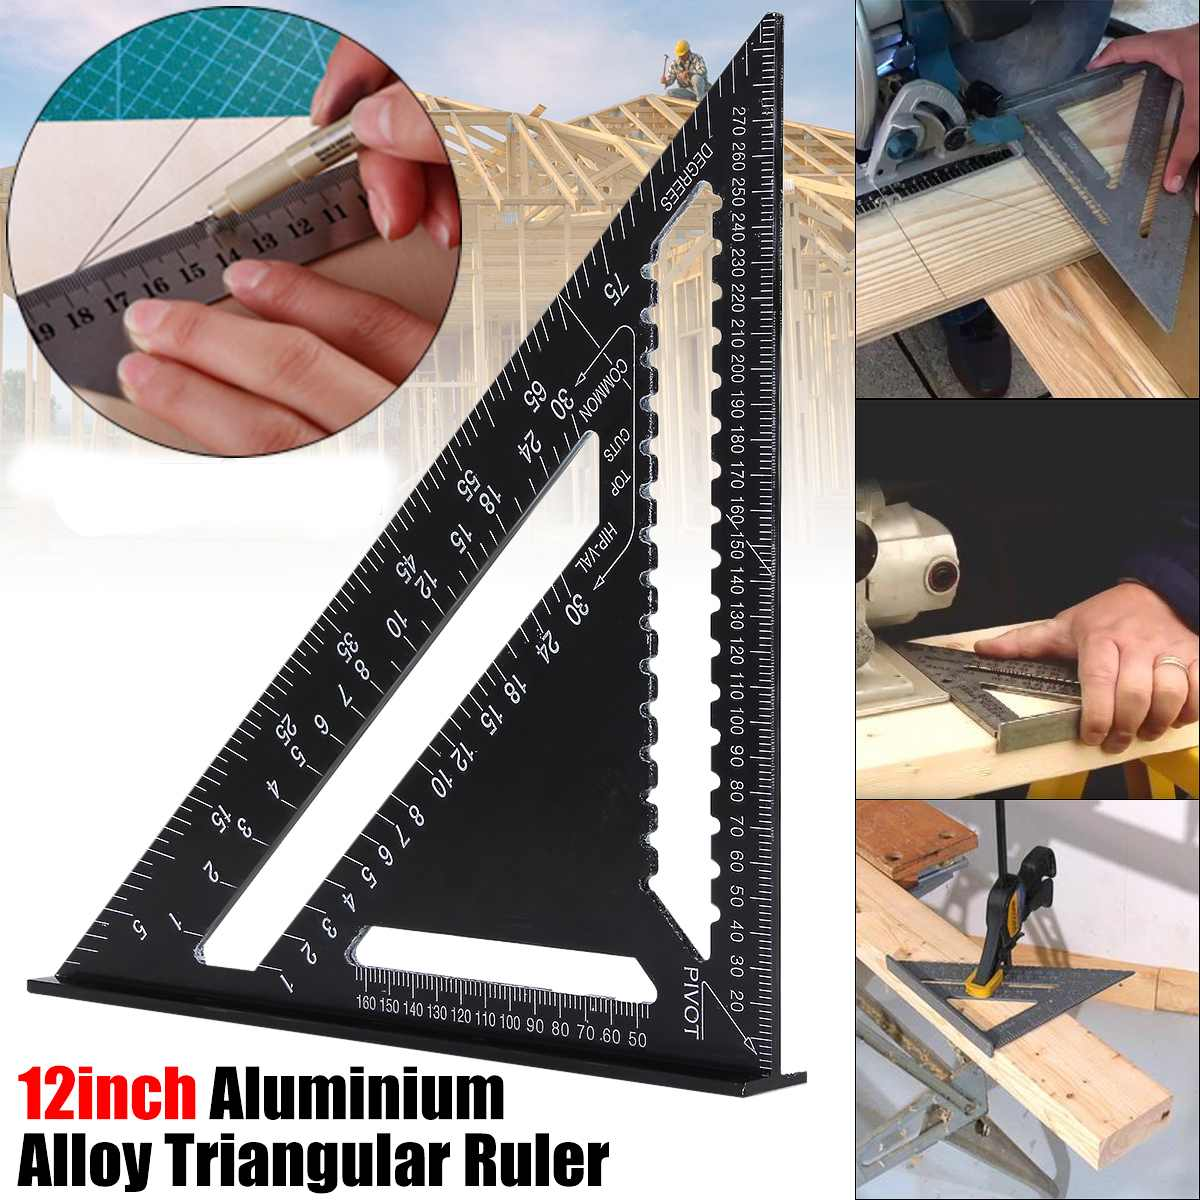 12inch Speed Square Metric Aluminum Alloy Triangle Ruler Squares for Measuring Tool Metric Angle Protractor Woodworking Tools